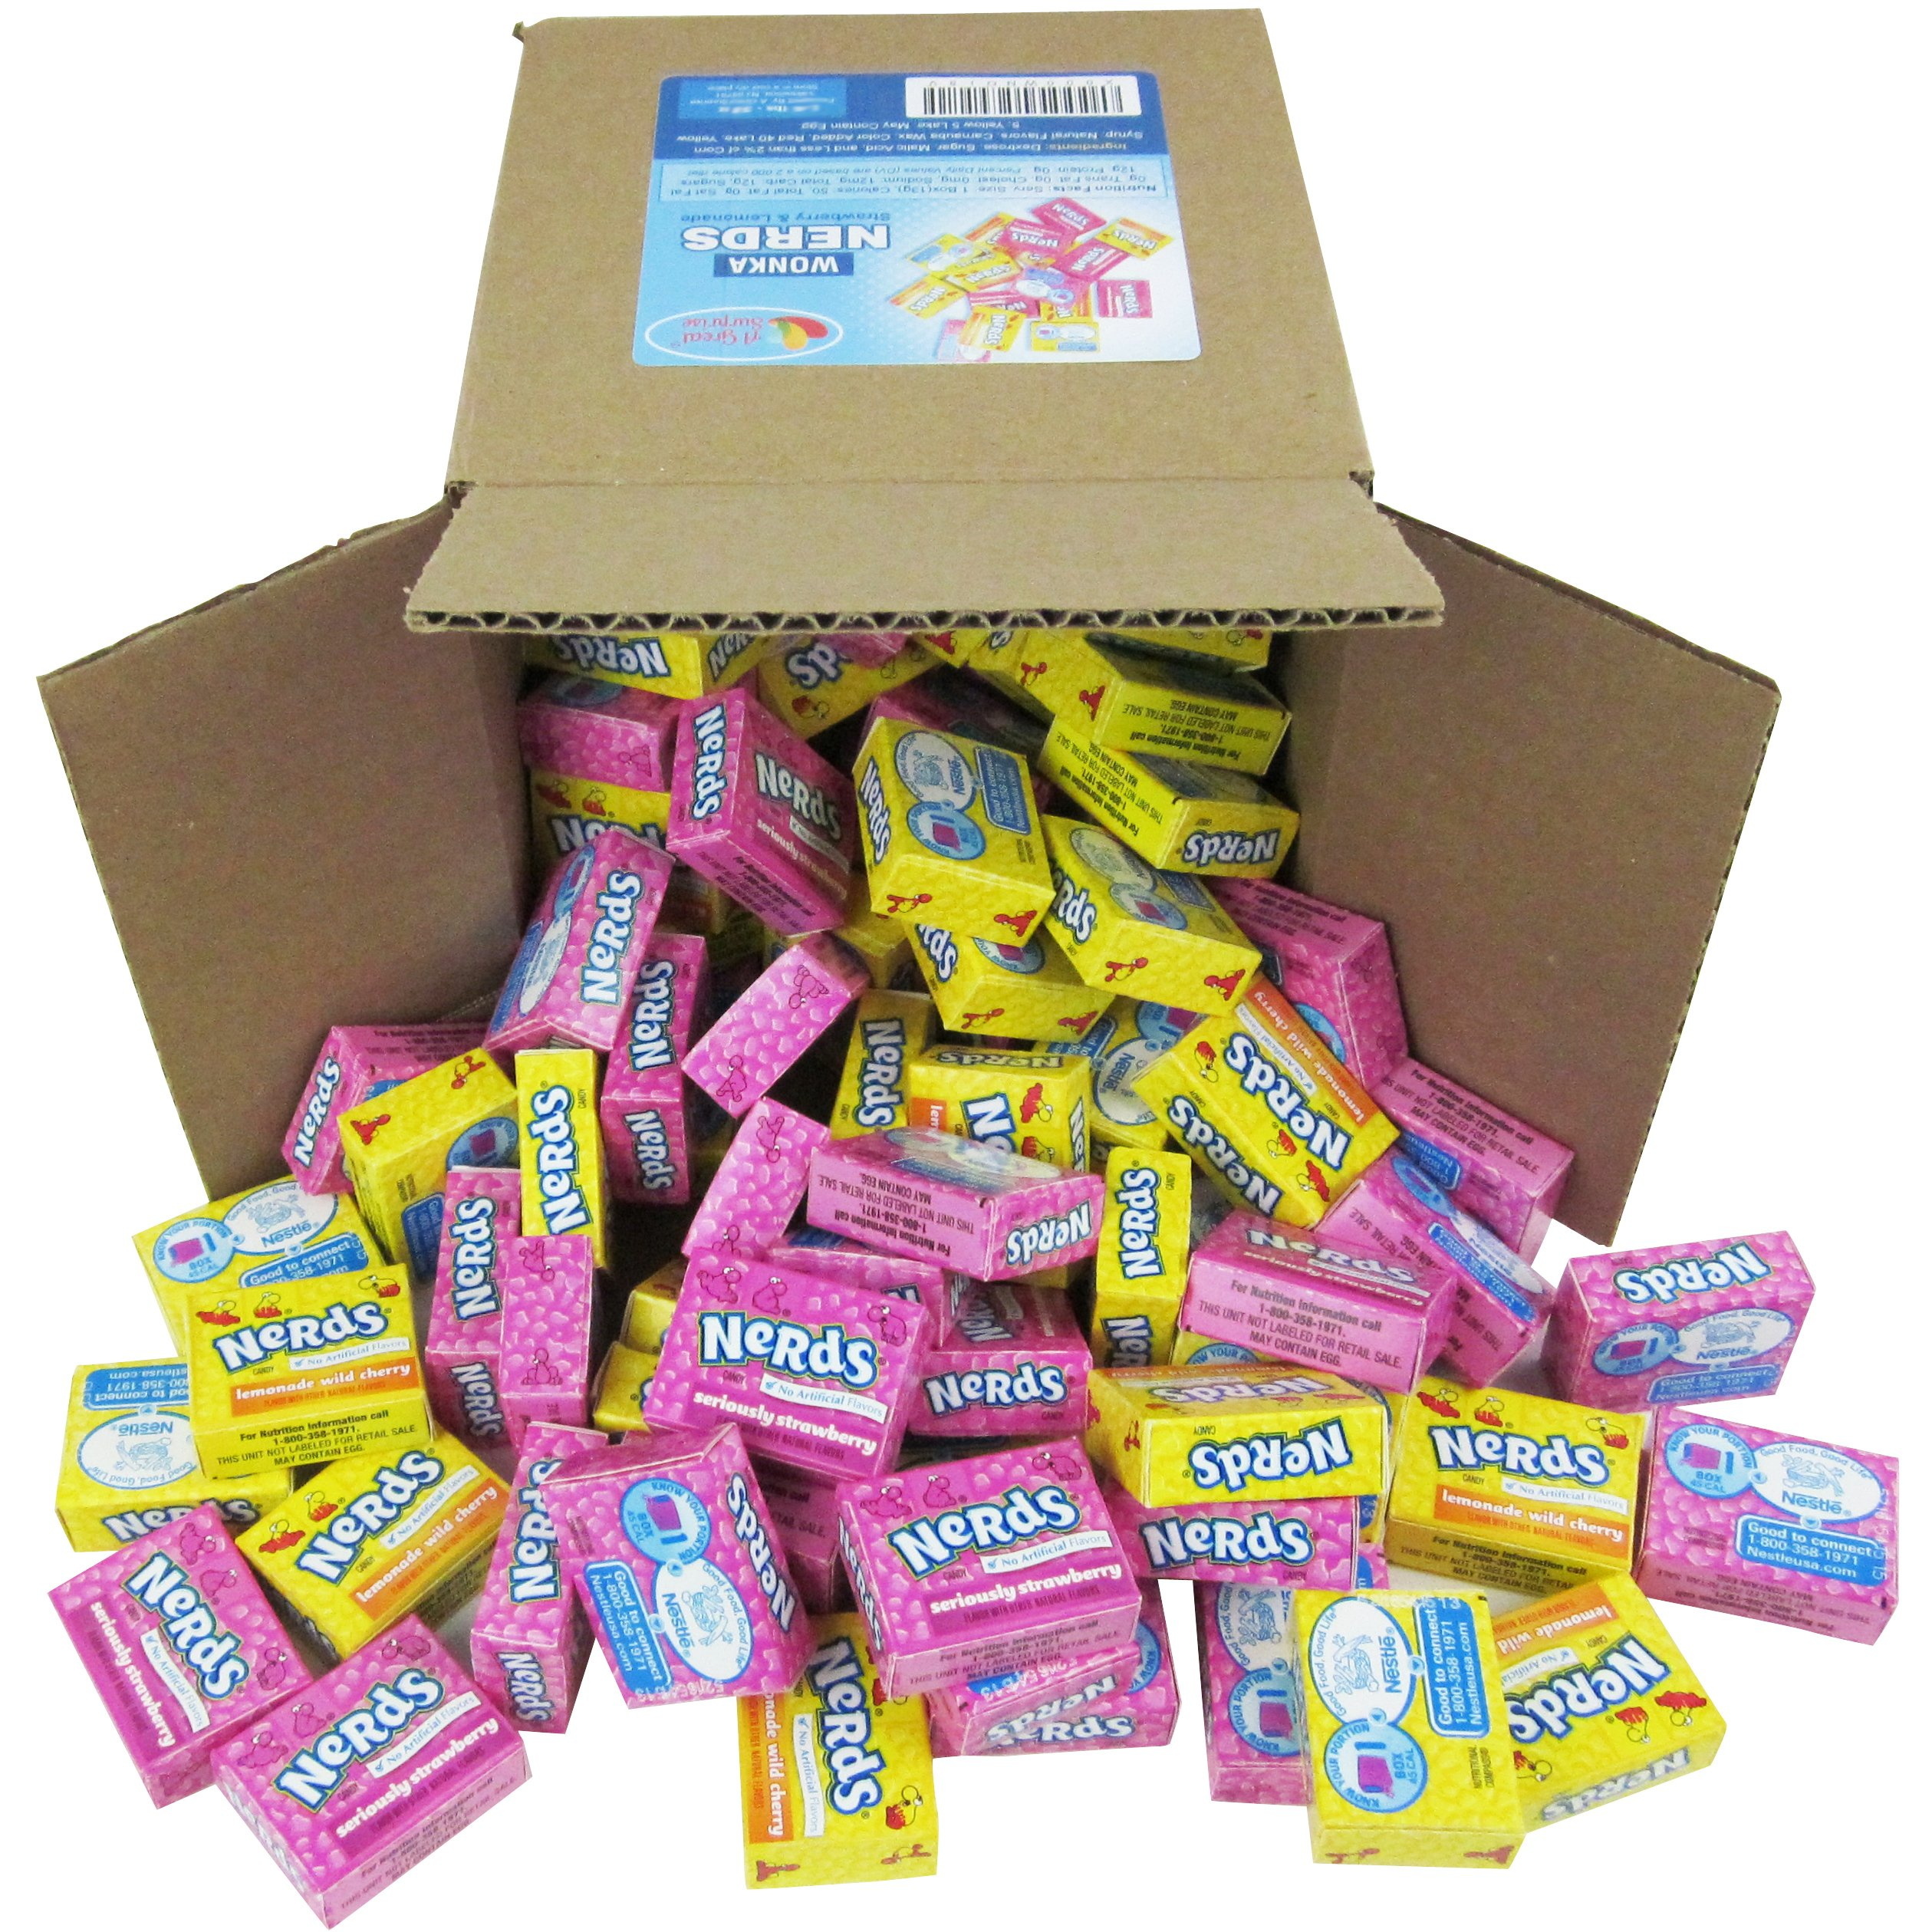 Nerds Candy - Wonka Nerds Mini Boxes, Strawberry and Lemonade Wild Cherry Assortment, 4 LB Box Bulk Candy (Approx. 100 Mini Boxes) by A Great Surprise (Image #1)